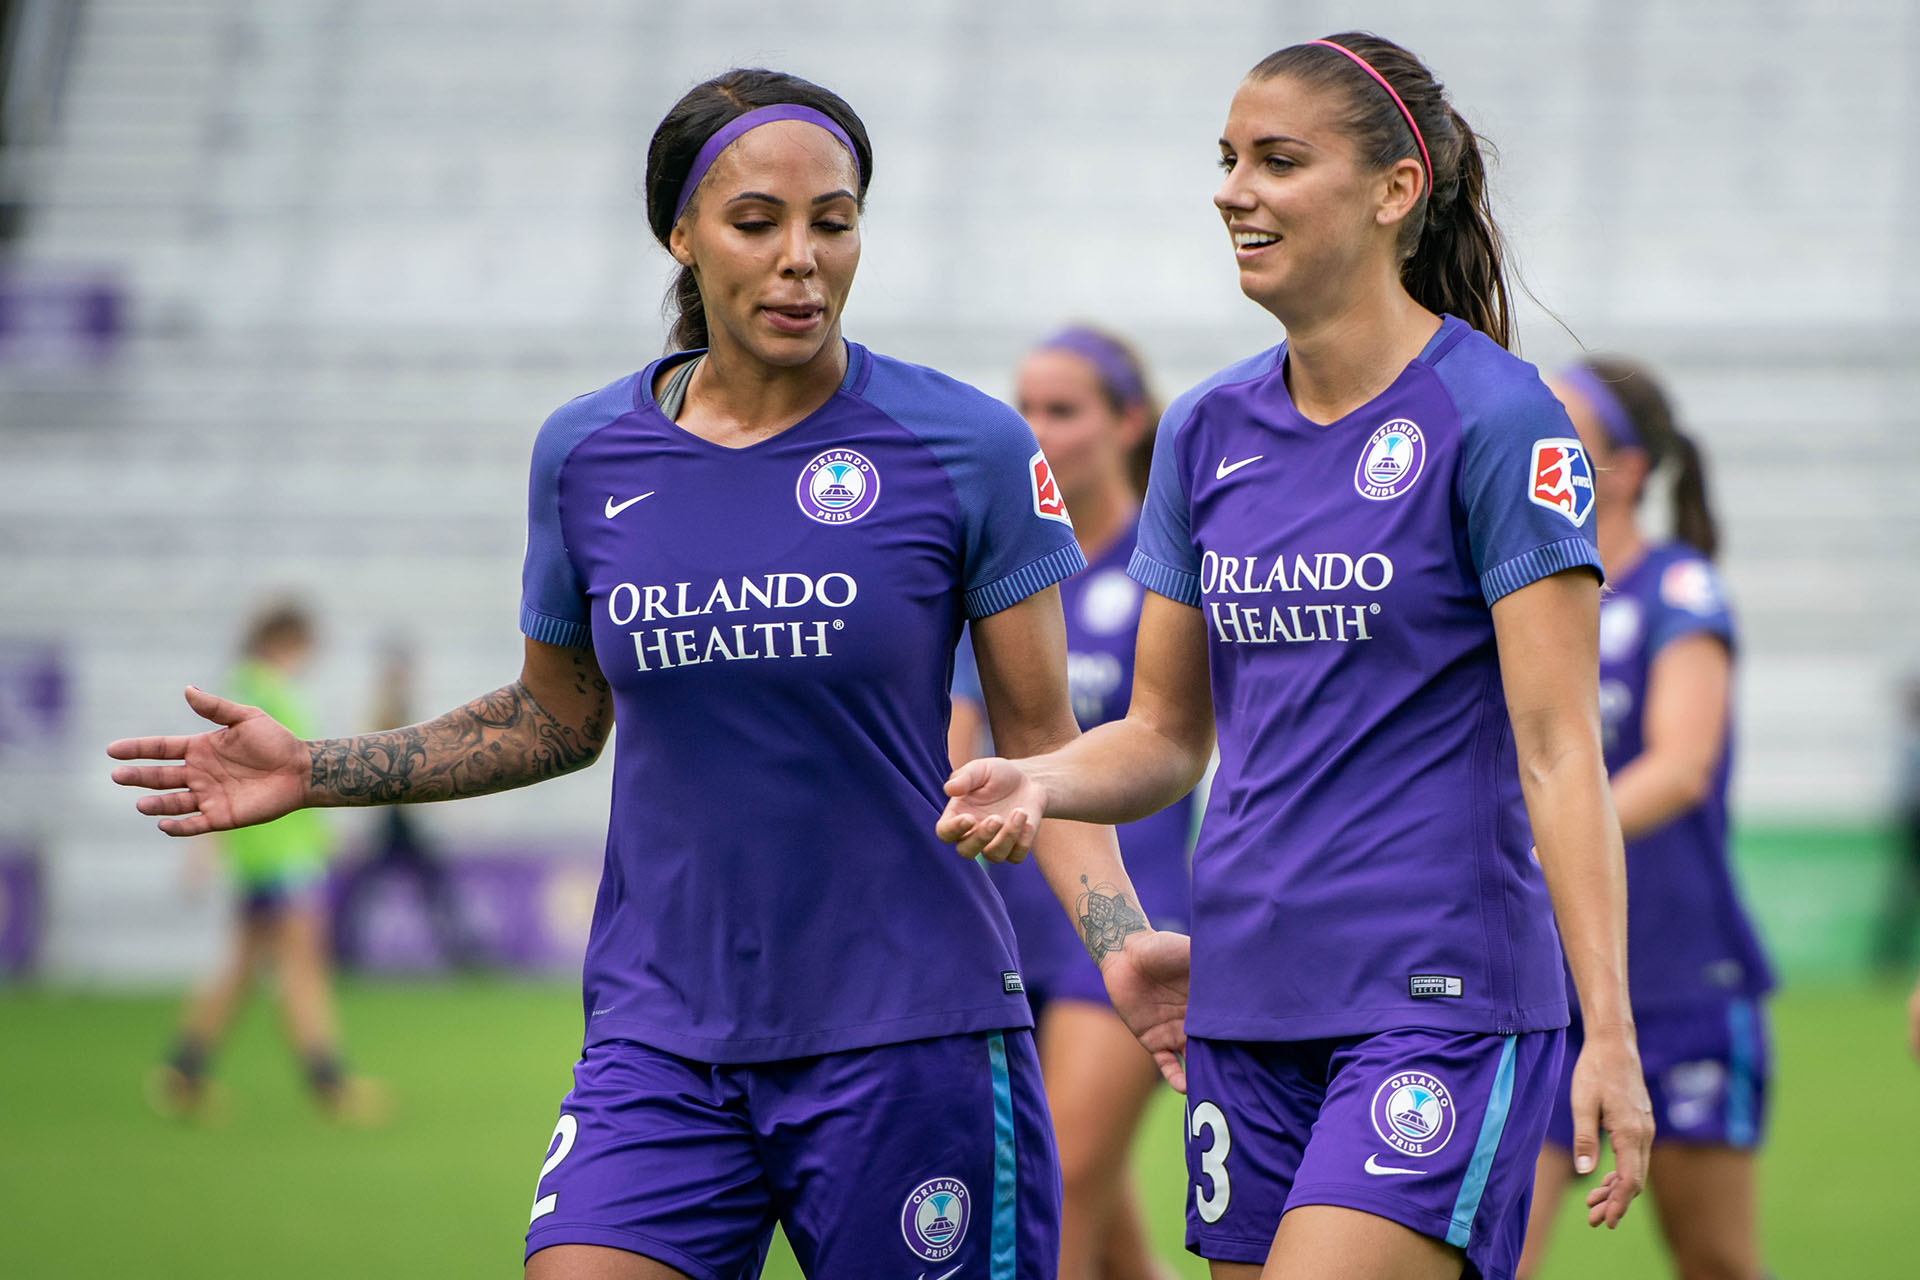 51ae66c1d Orlando Pride forwards Sydney Leroux, left, and Alex Morgan, right, discuss  the match heading into halftime before a 1-0 win over the Houston Dash at  ...